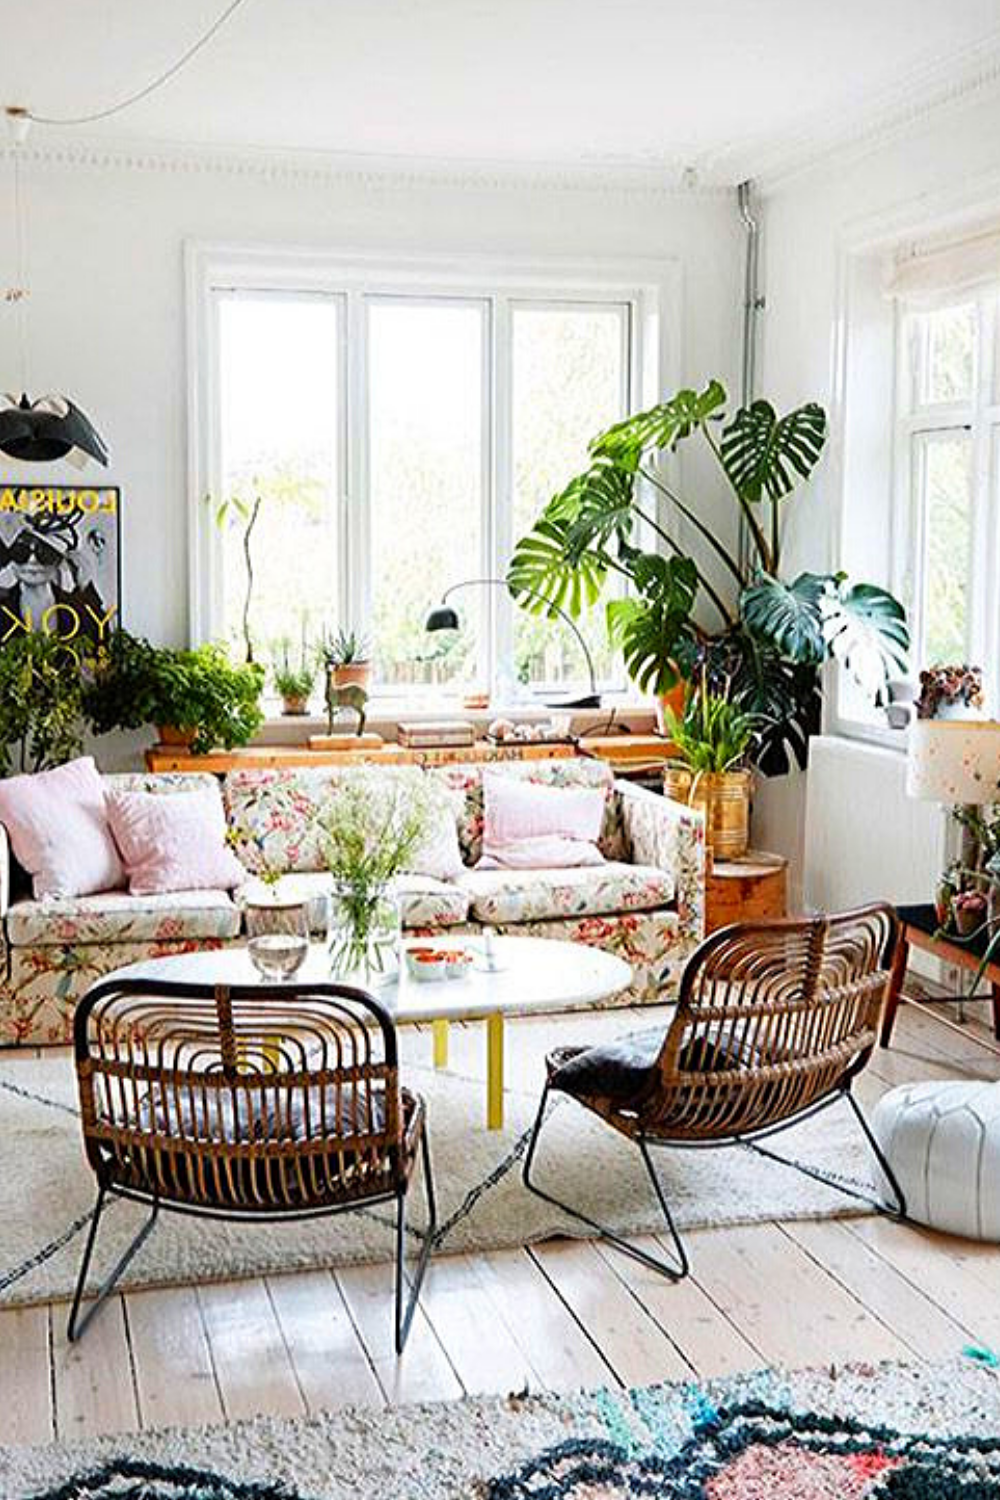 30 Simple Diy Apartment Decorating To Beautify Your Design In 2020